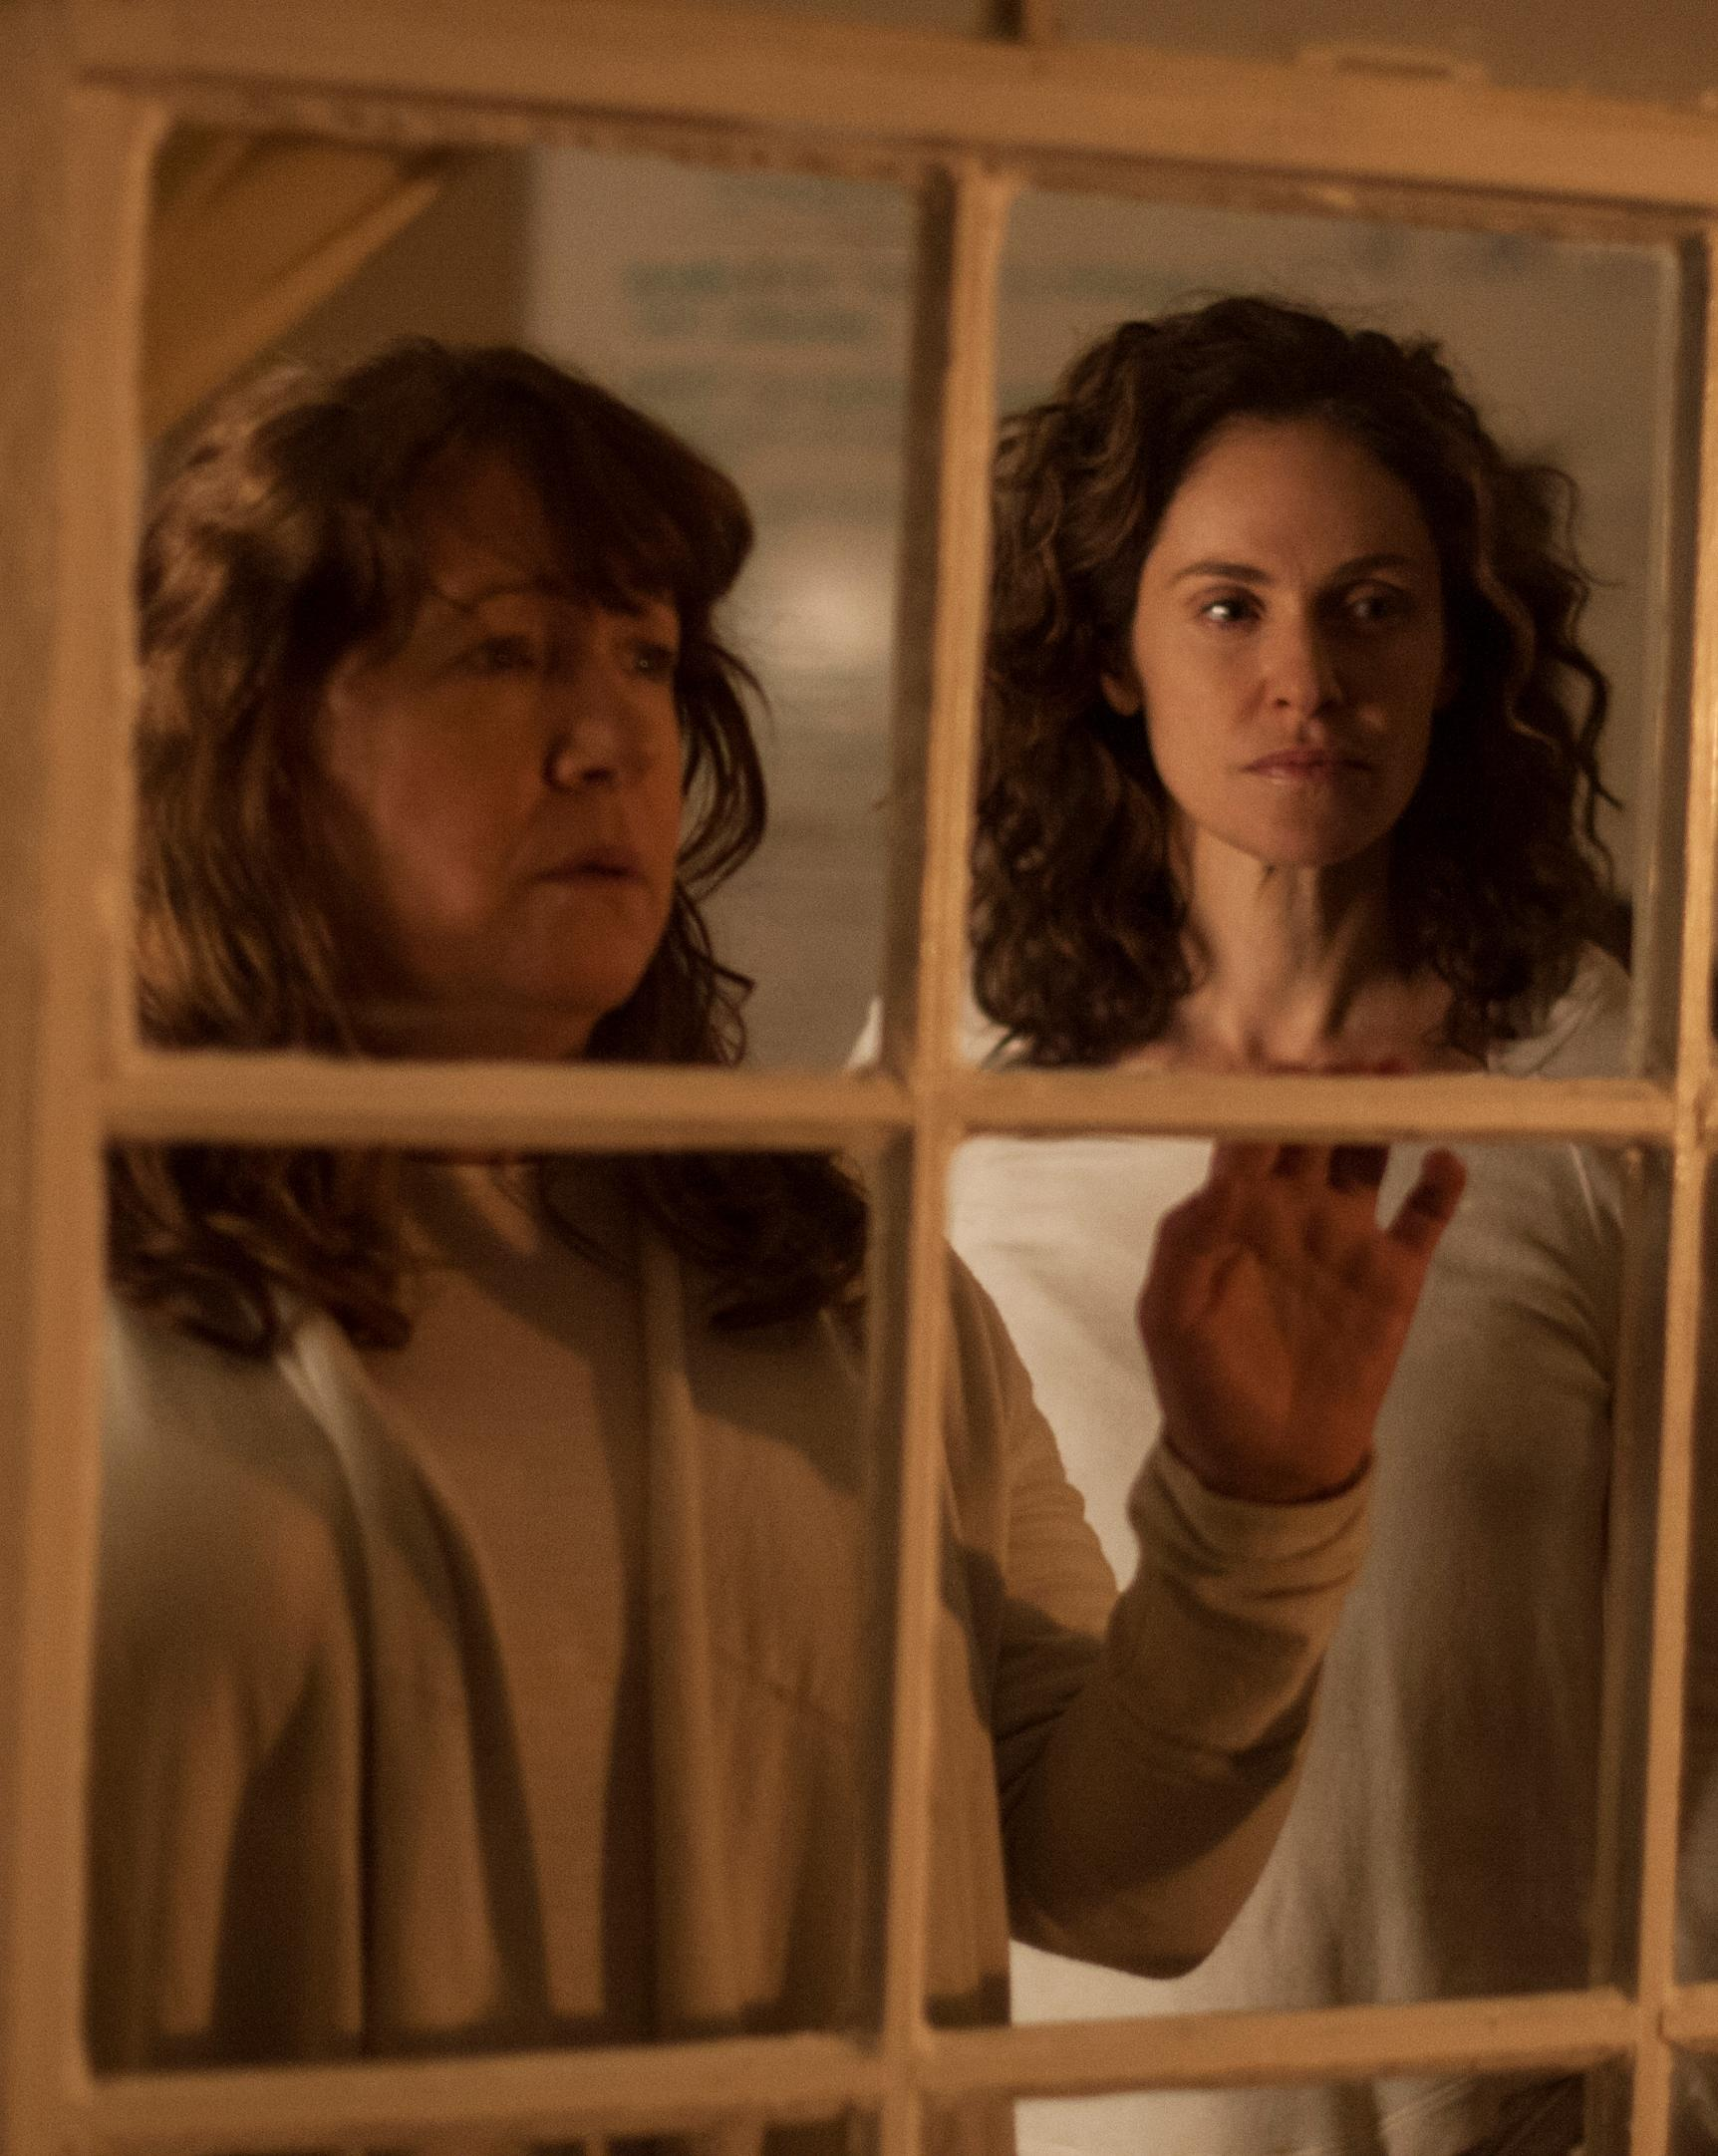 'The Leftovers' Episode 5